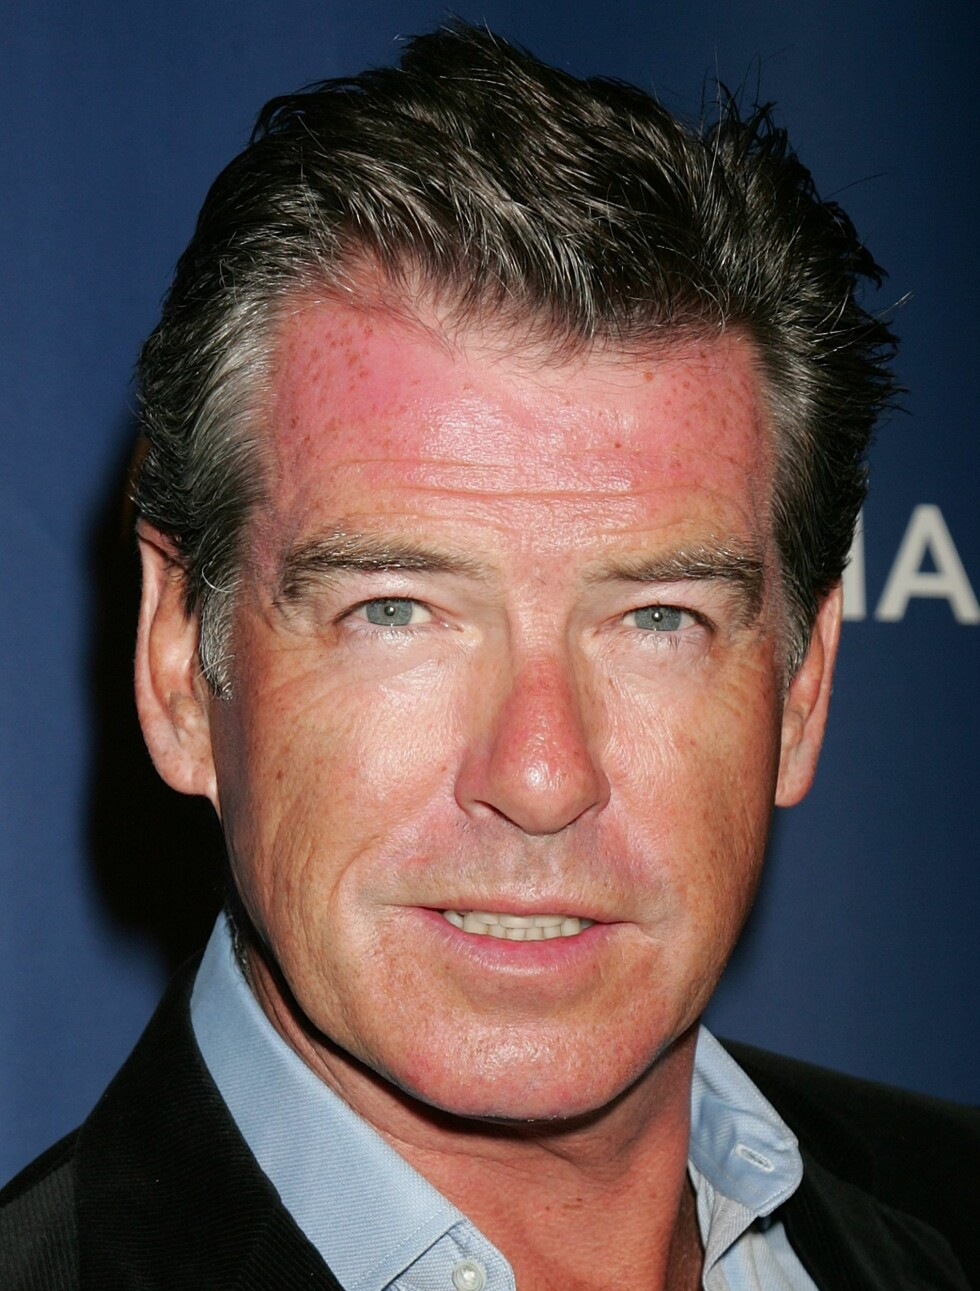 Pierce Brosnan, selveste James Bond, får ikke bare anerkjennelse for sin stil, men også for sin innsats for miljøet. I 2004 ble han kåret til verdens best kledde miljøaktivist av The Sustainable Style Foundation. Han sitter også i styret til Environmental Media Association. Foto: All Over Press